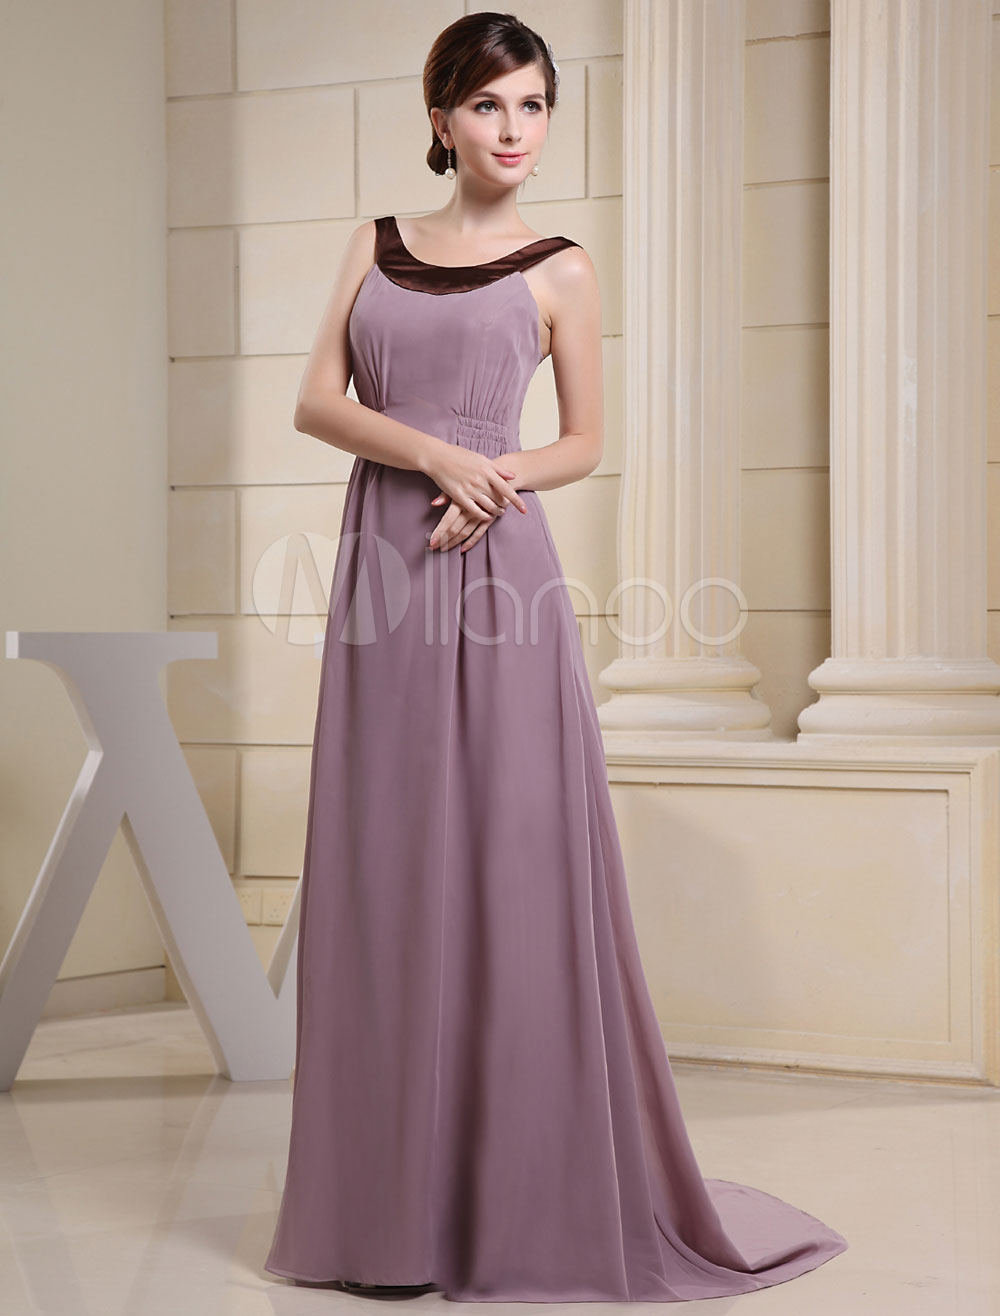 Lavender Evening Dress Jewel Neckline Elastic Pleated Court Train Chiffon Wedding Party Dress